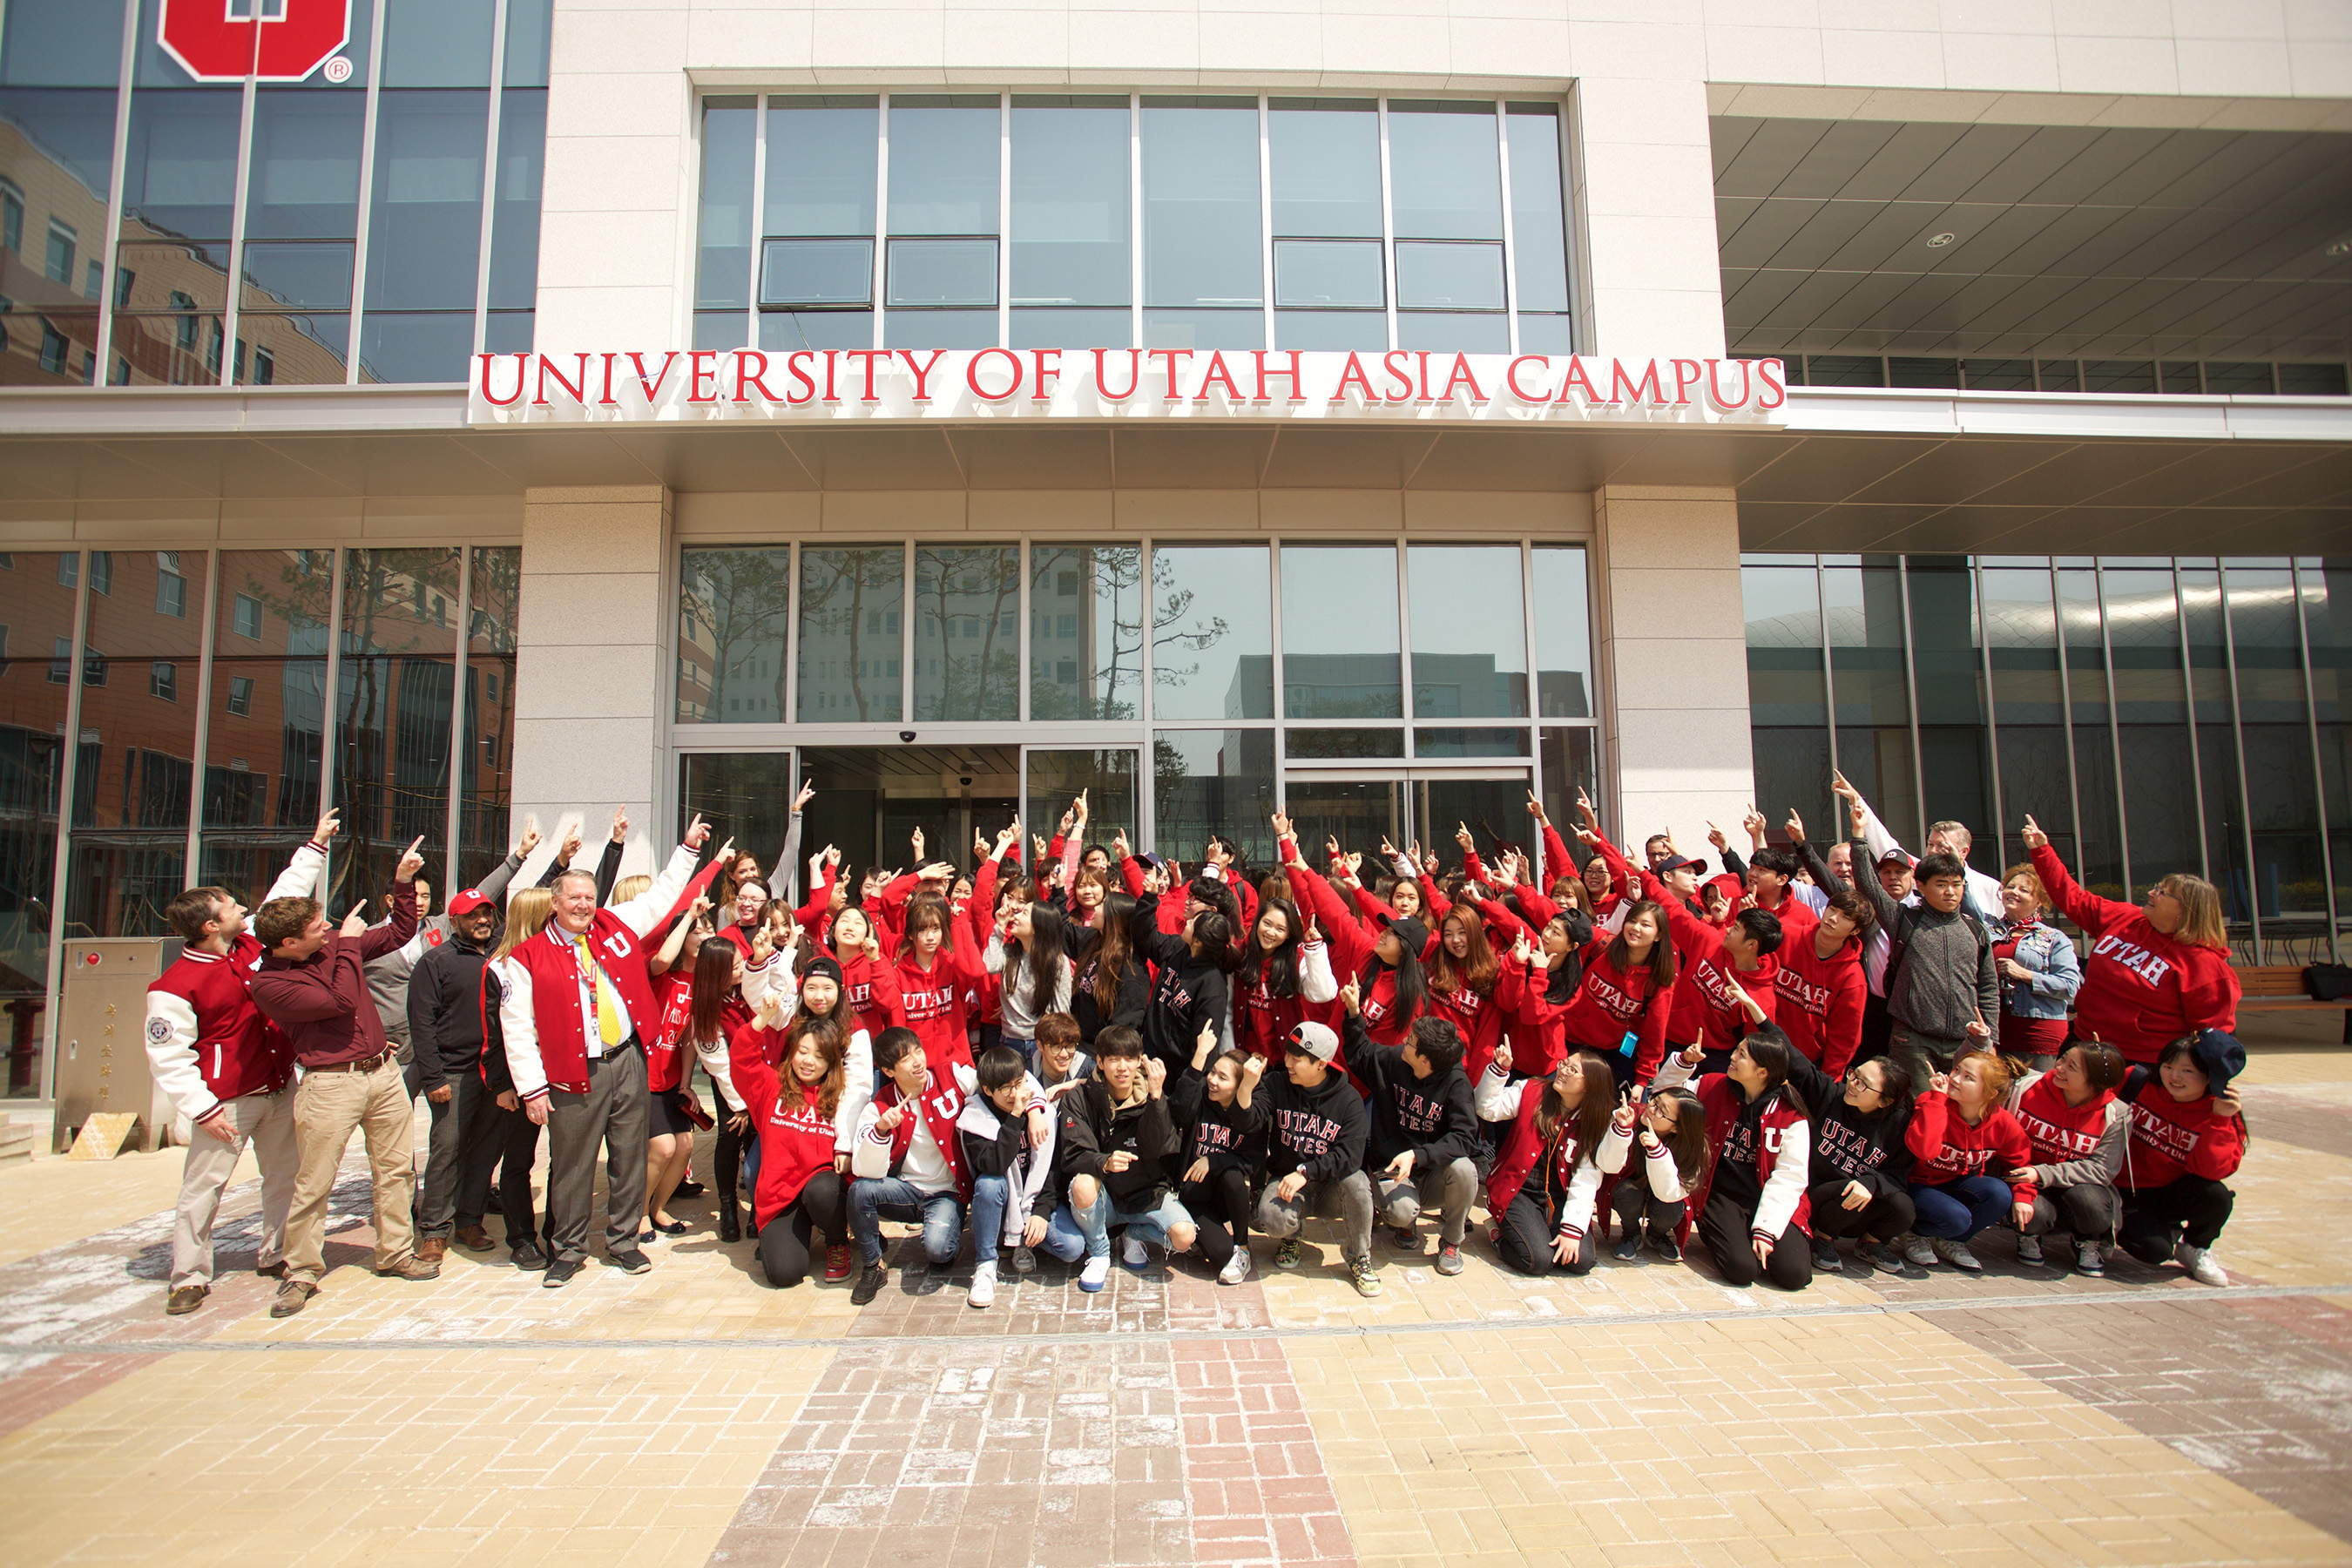 The University of Utah Asia Campus students pose at their academic building